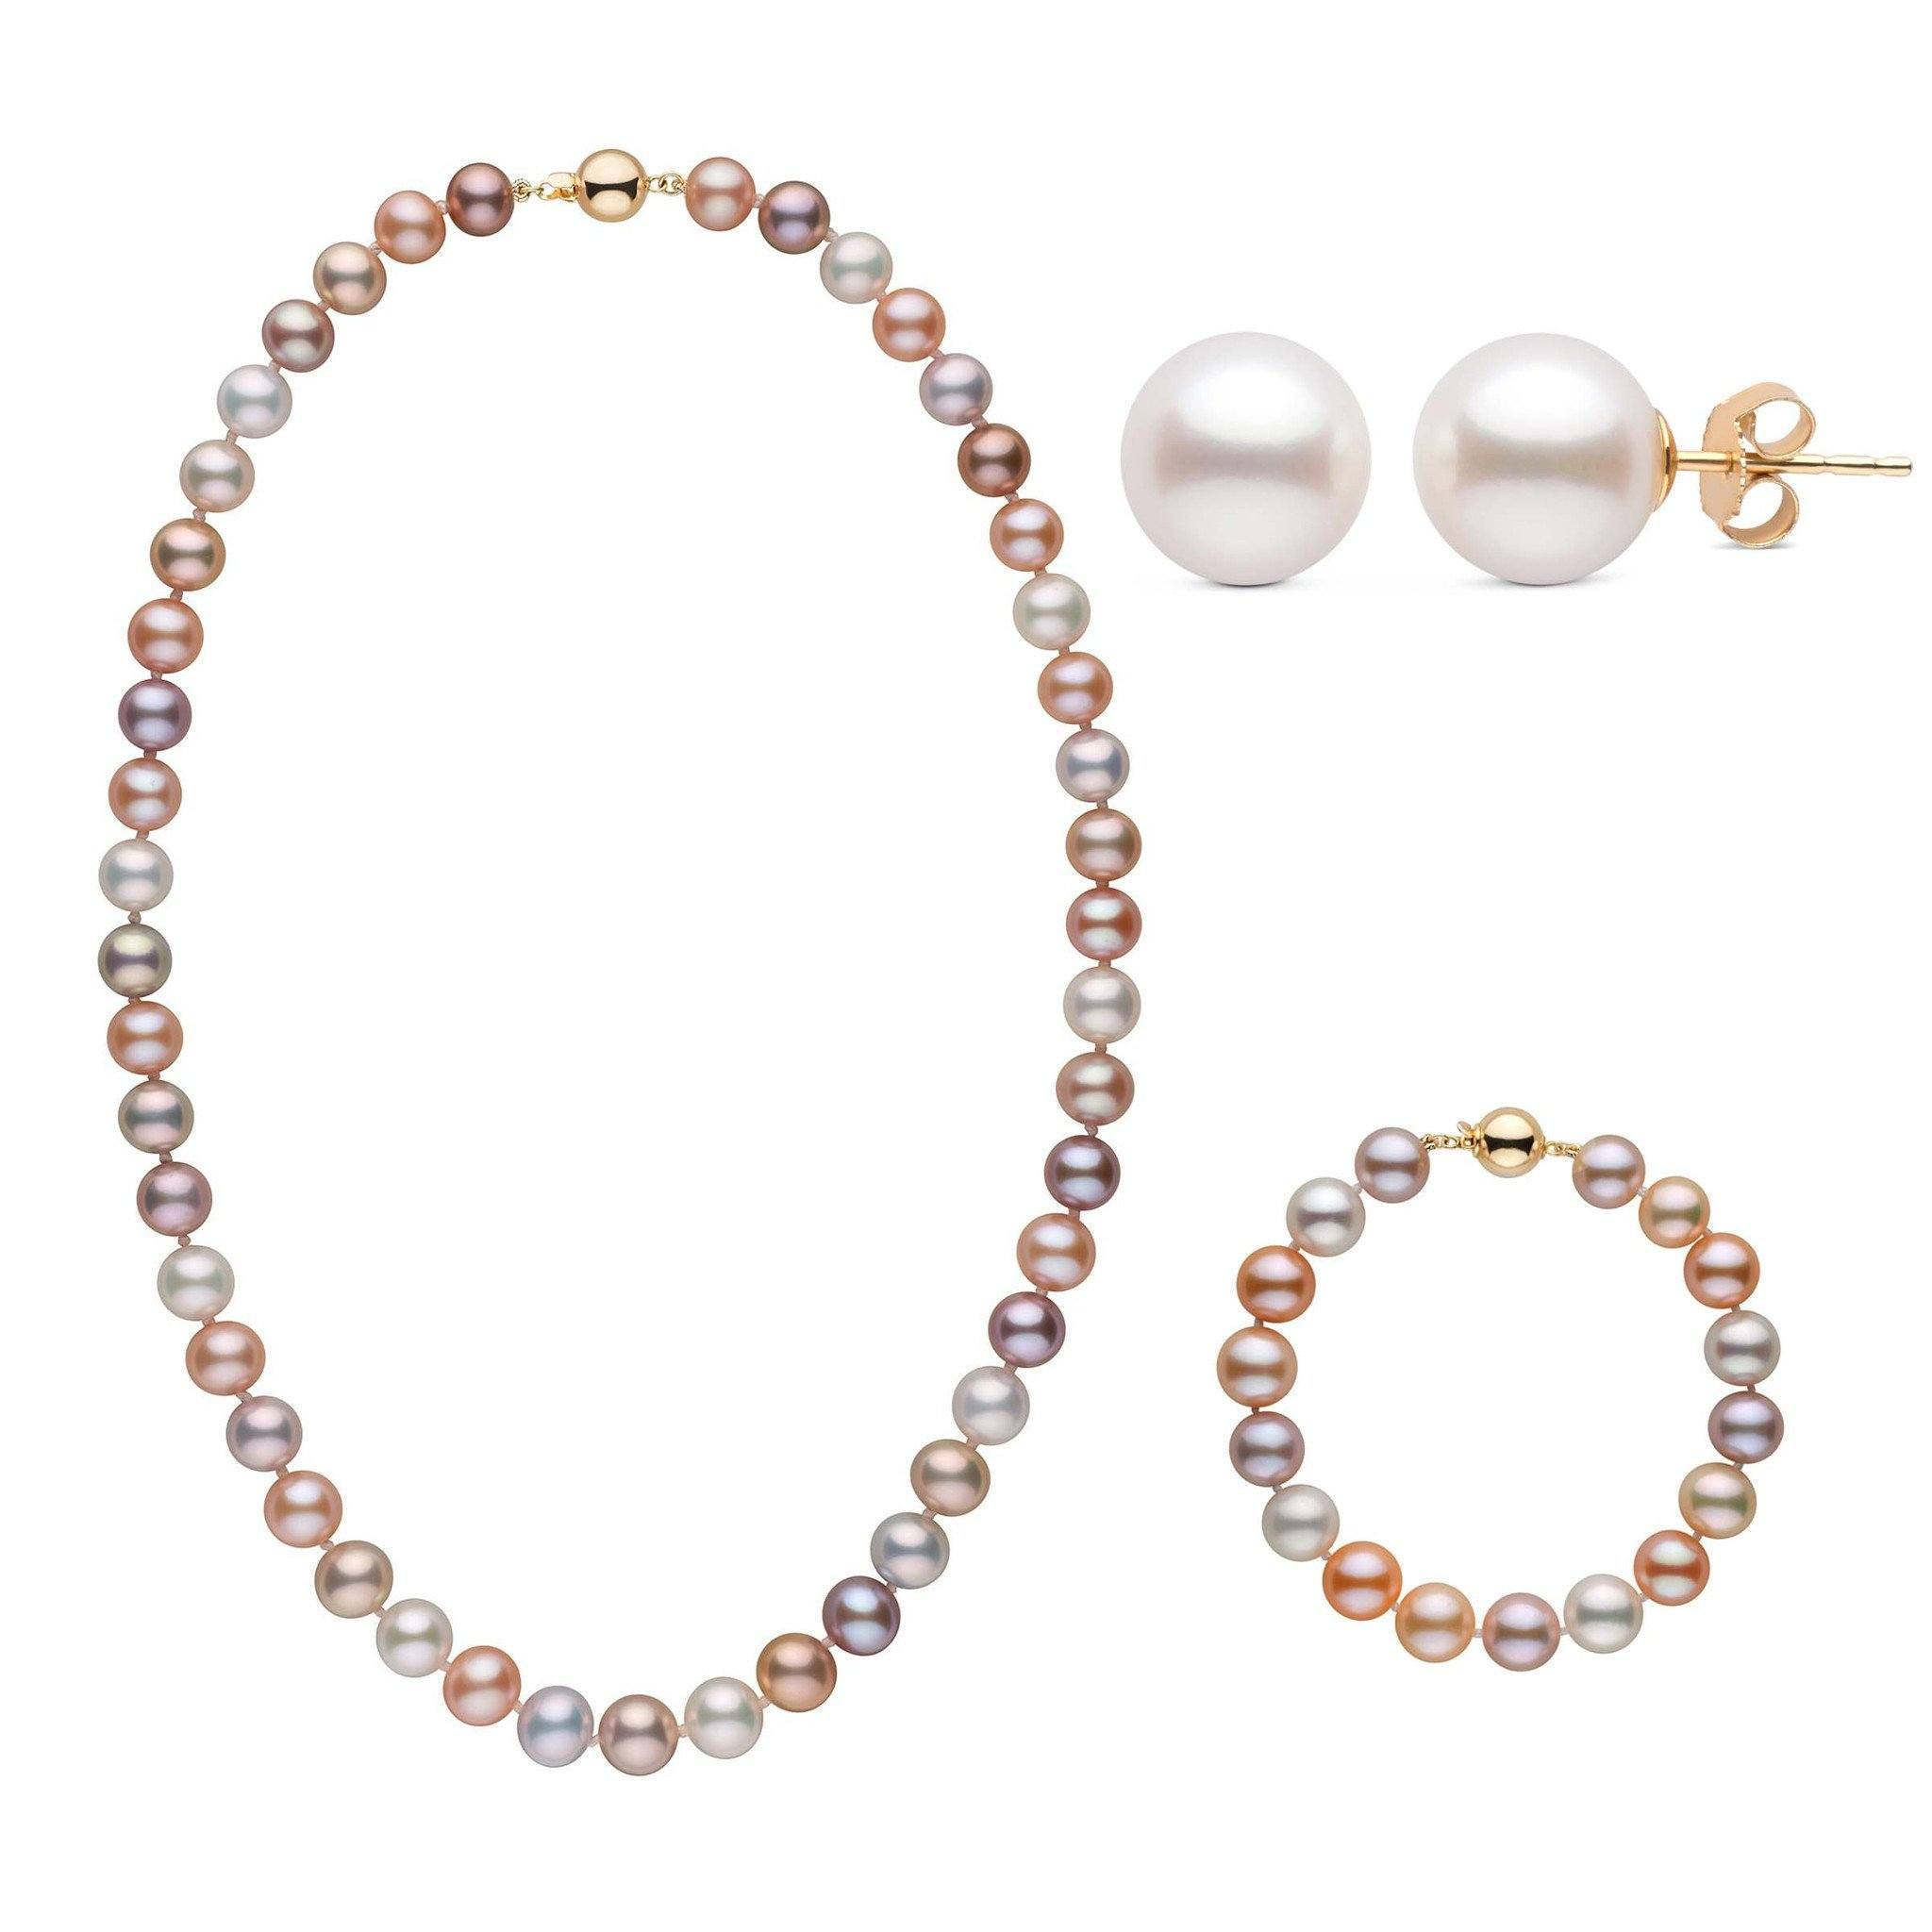 18 Inch 3 Piece Set of 8.5-9.0 mm AAA Multicolor Freshwater Pearls